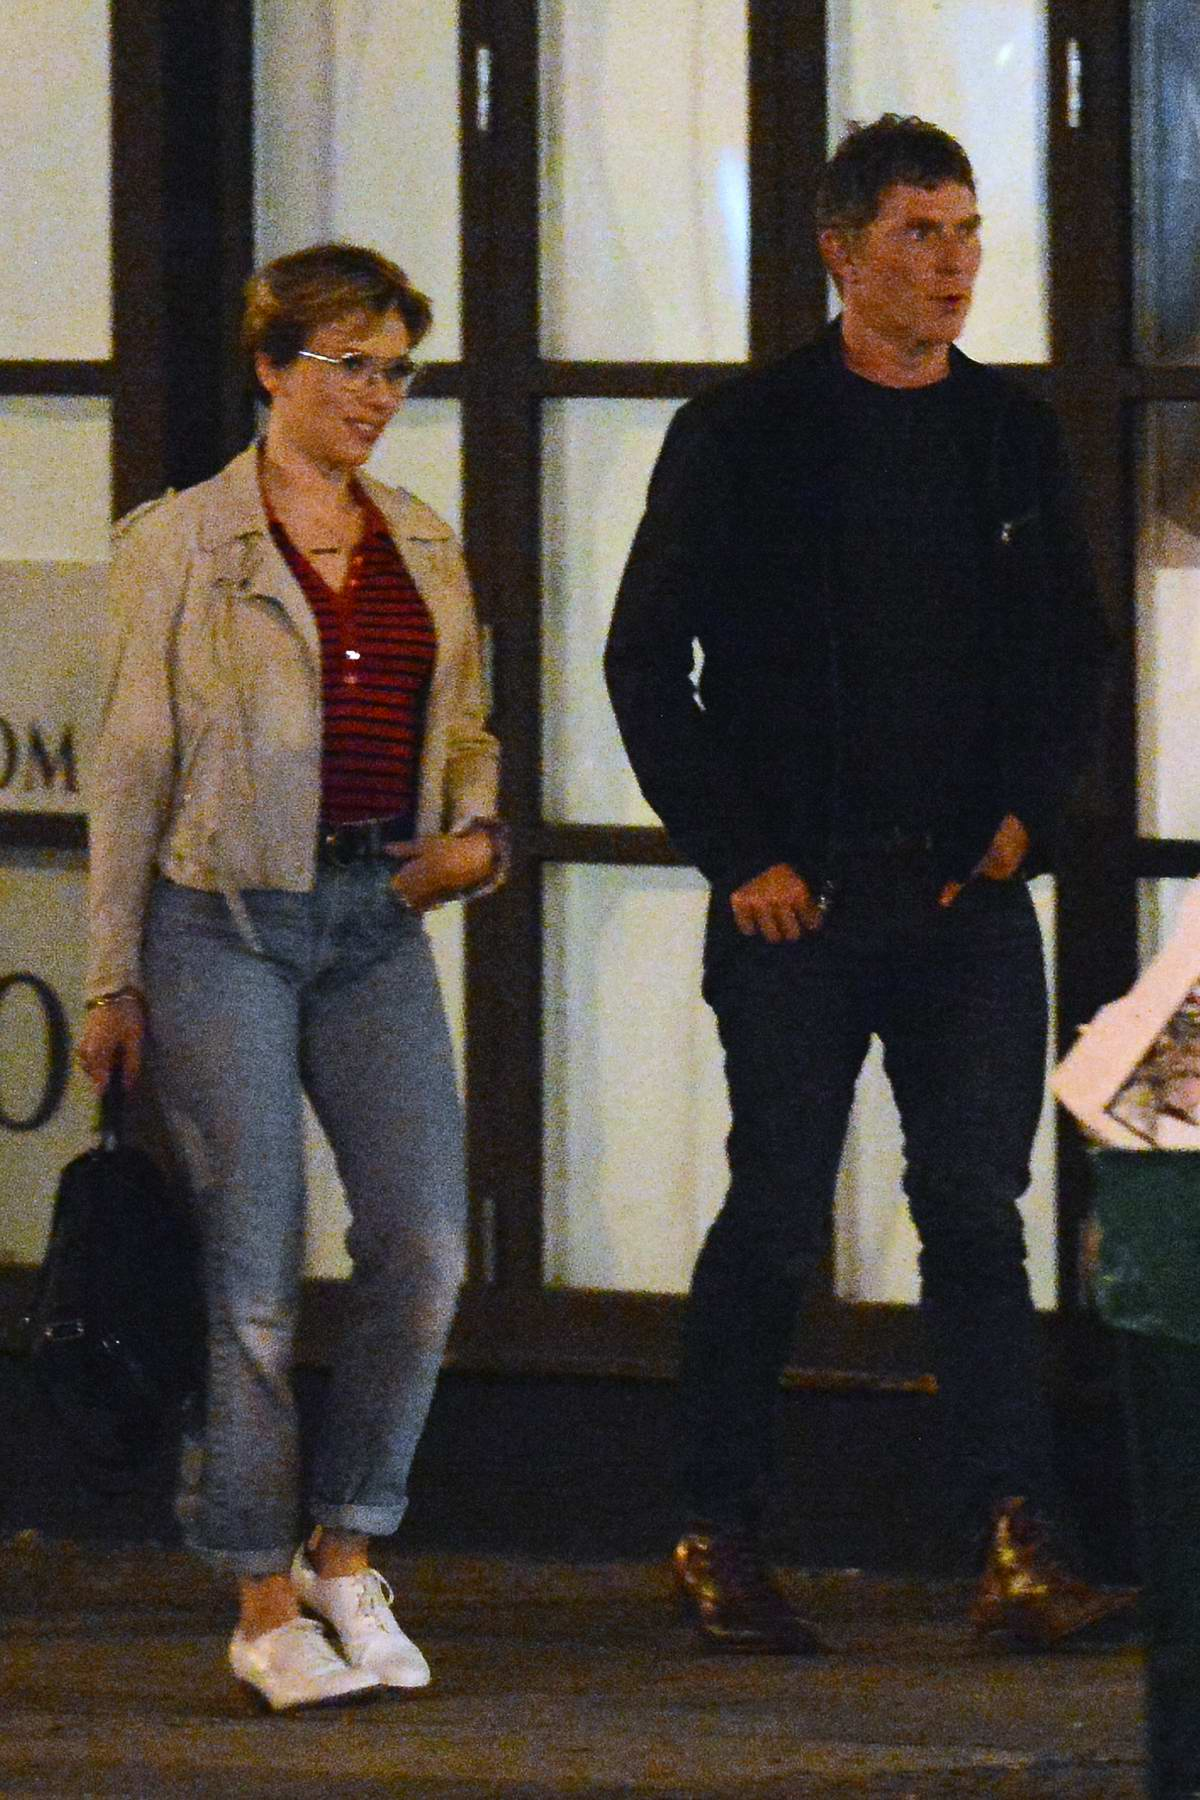 Scarlett Johansson and Bobby Flay step out for a late night dinner together in New York City